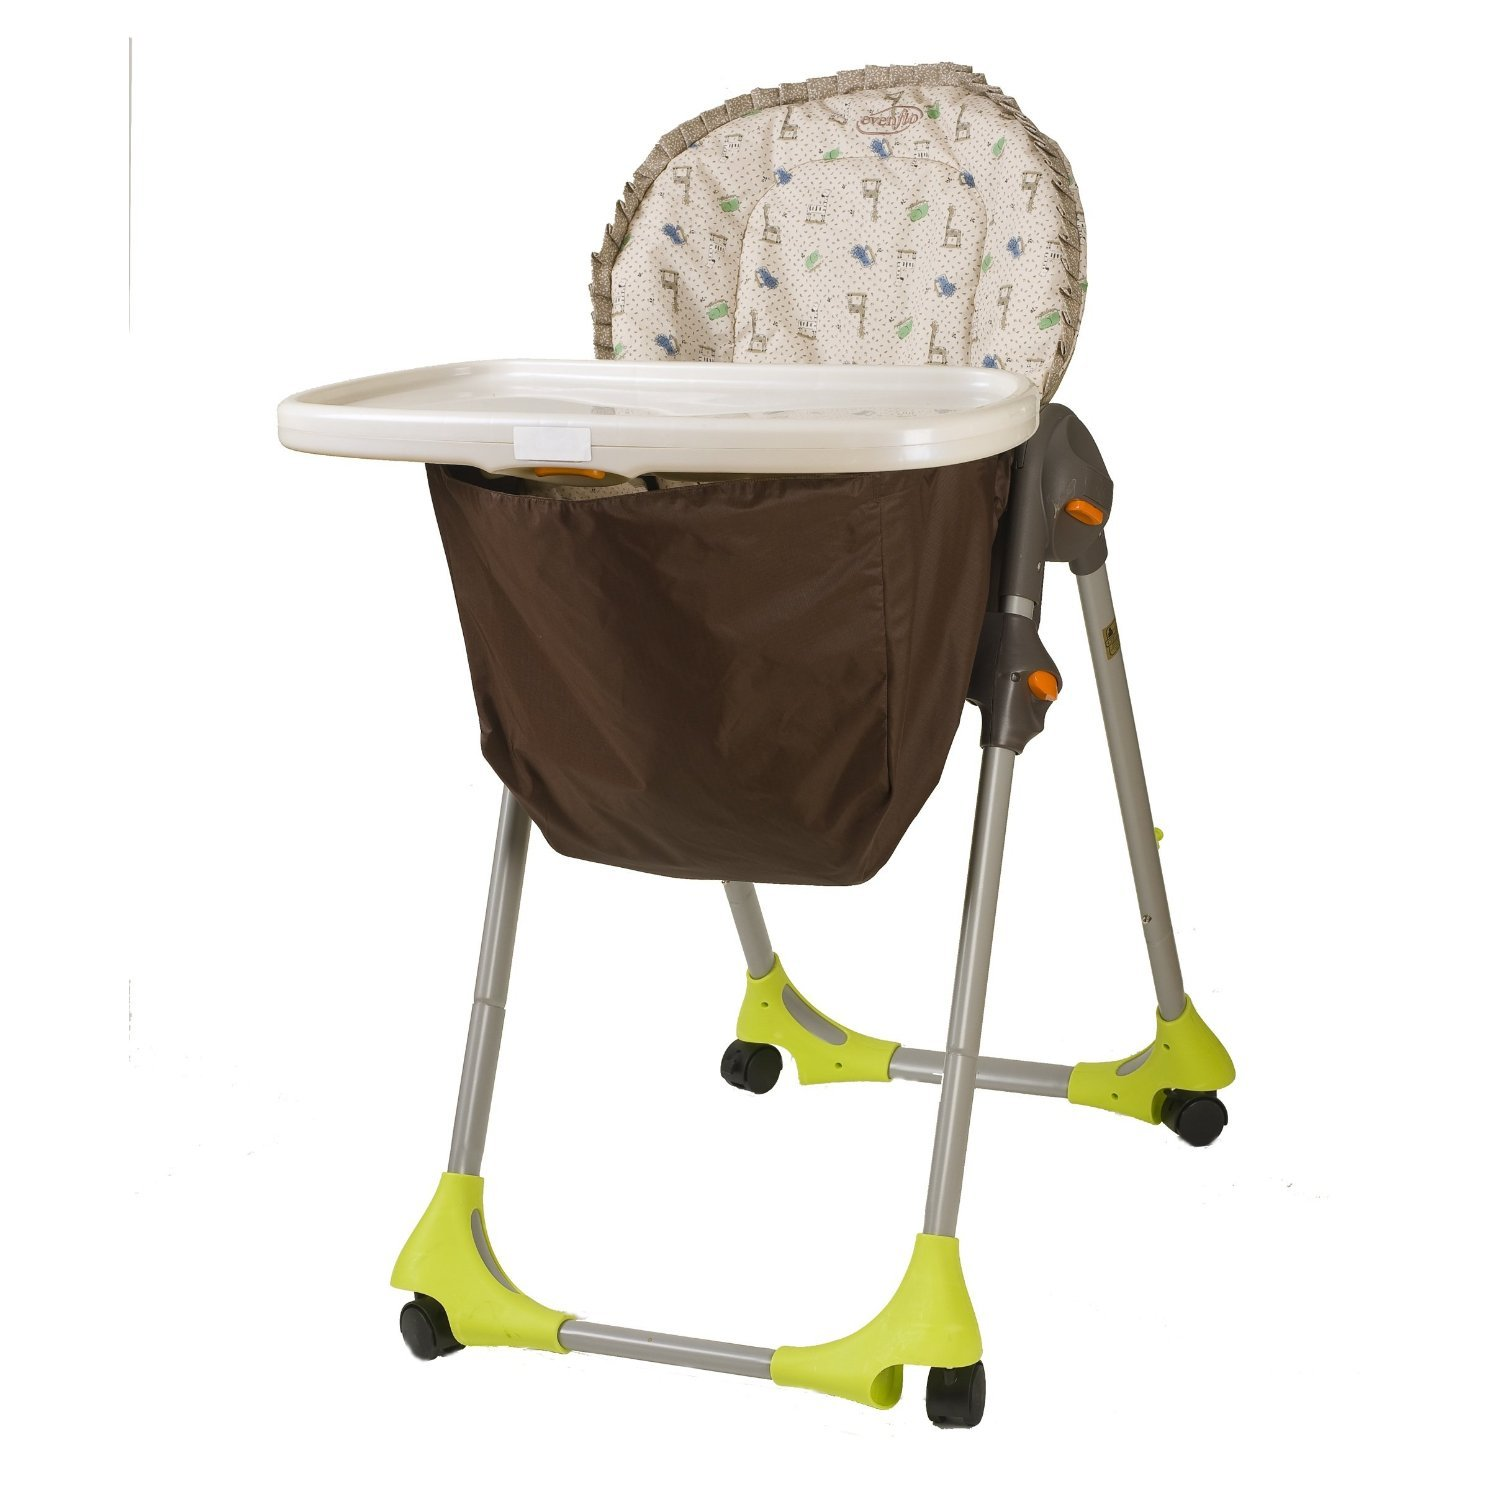 Wupzey High chair Food Catcher Hot Cocoa Amazon Baby